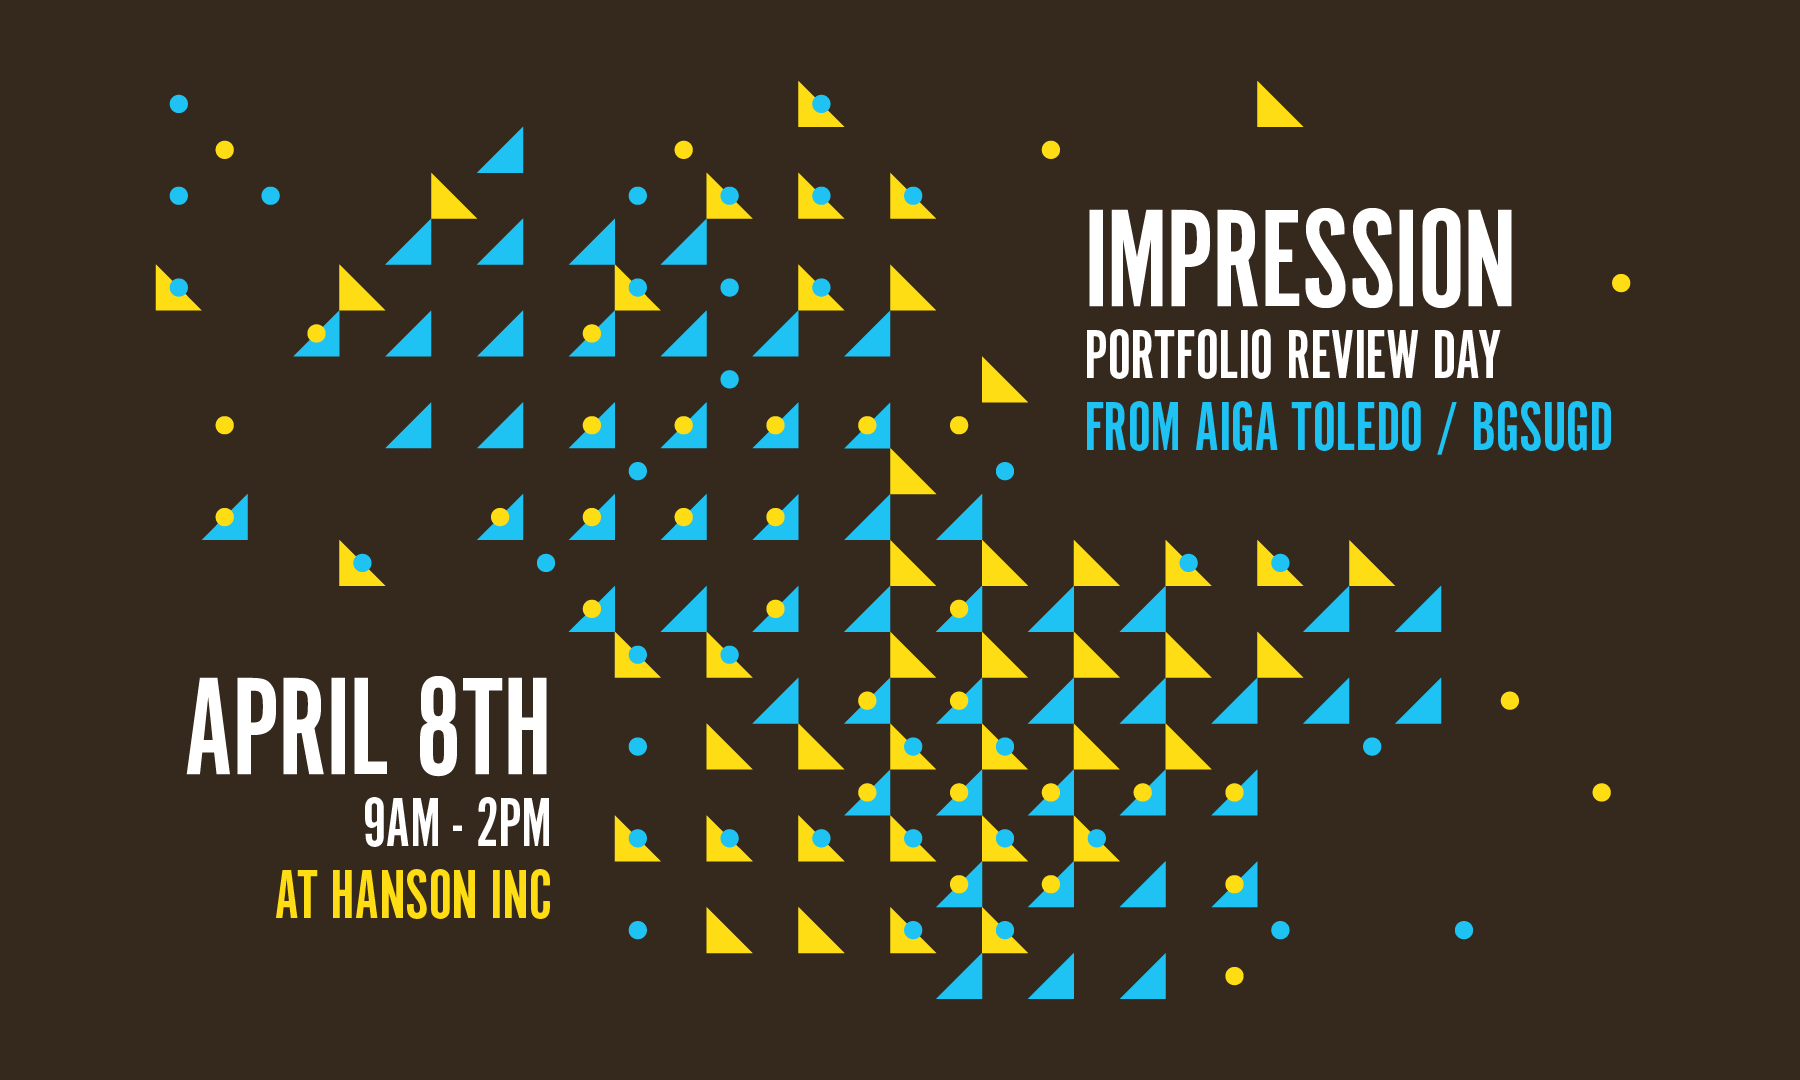 Impression. 2017 Portfolio Review Day